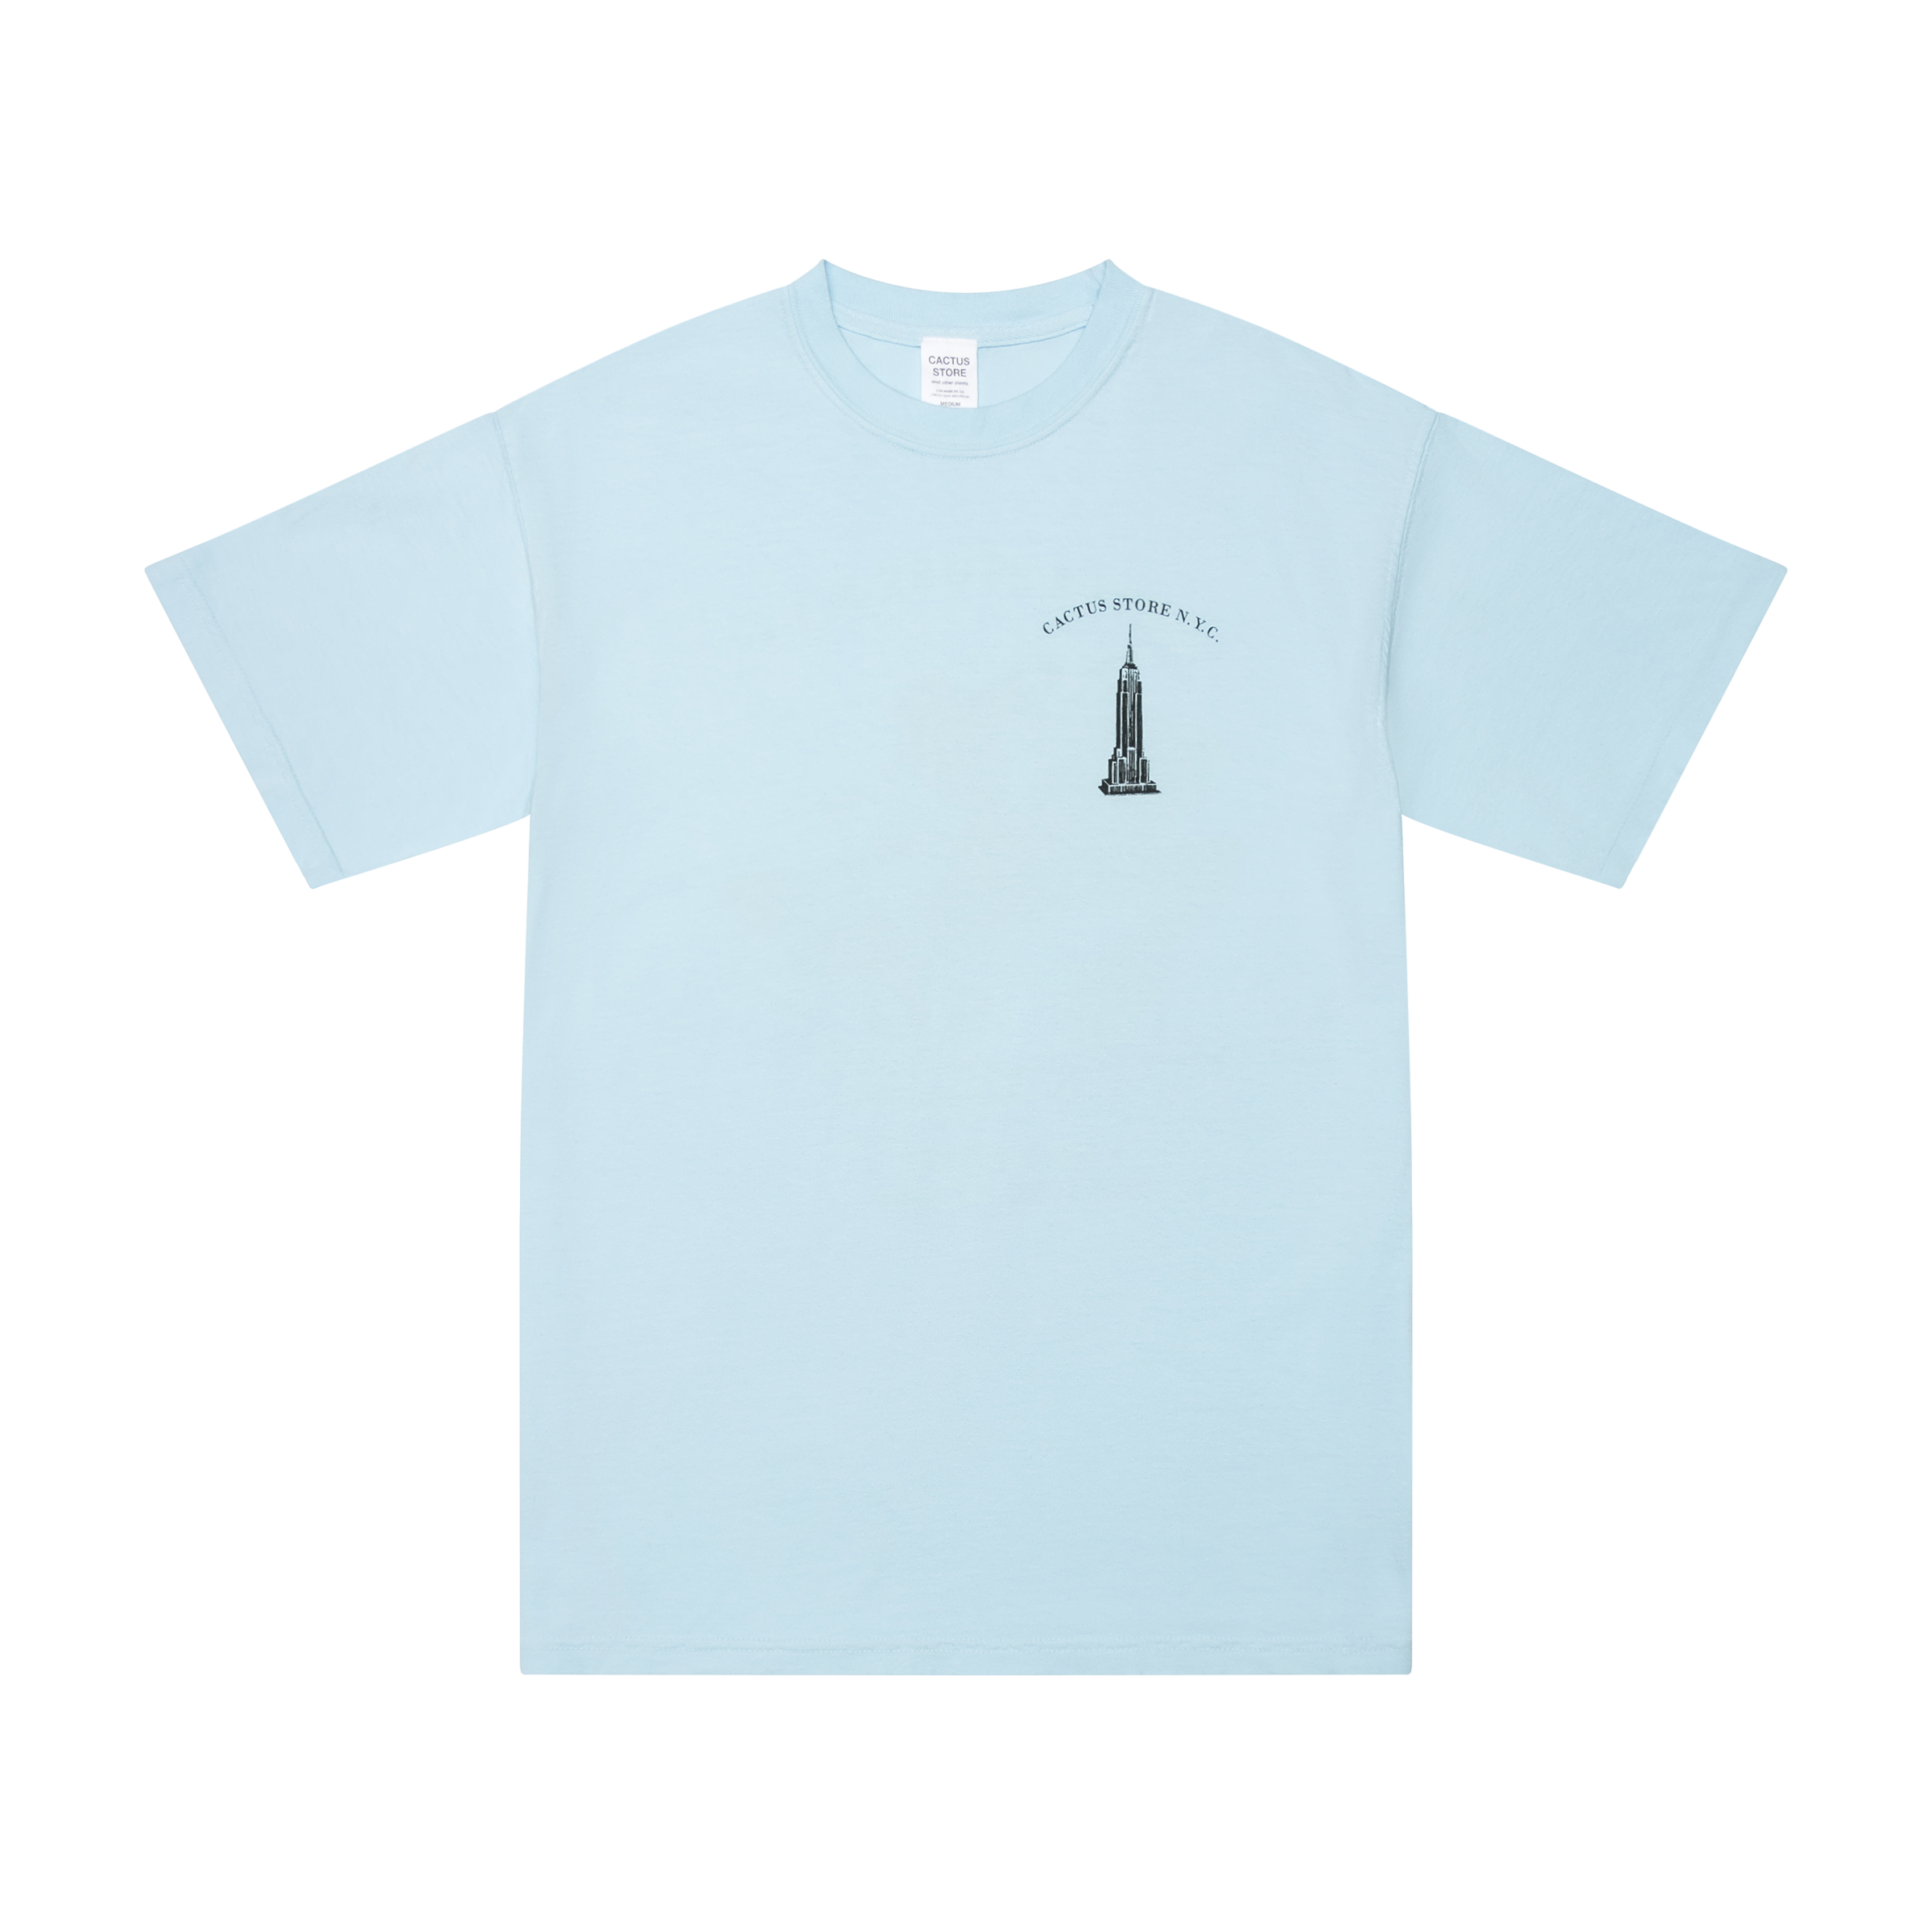 Flat lay t-shirt product picture